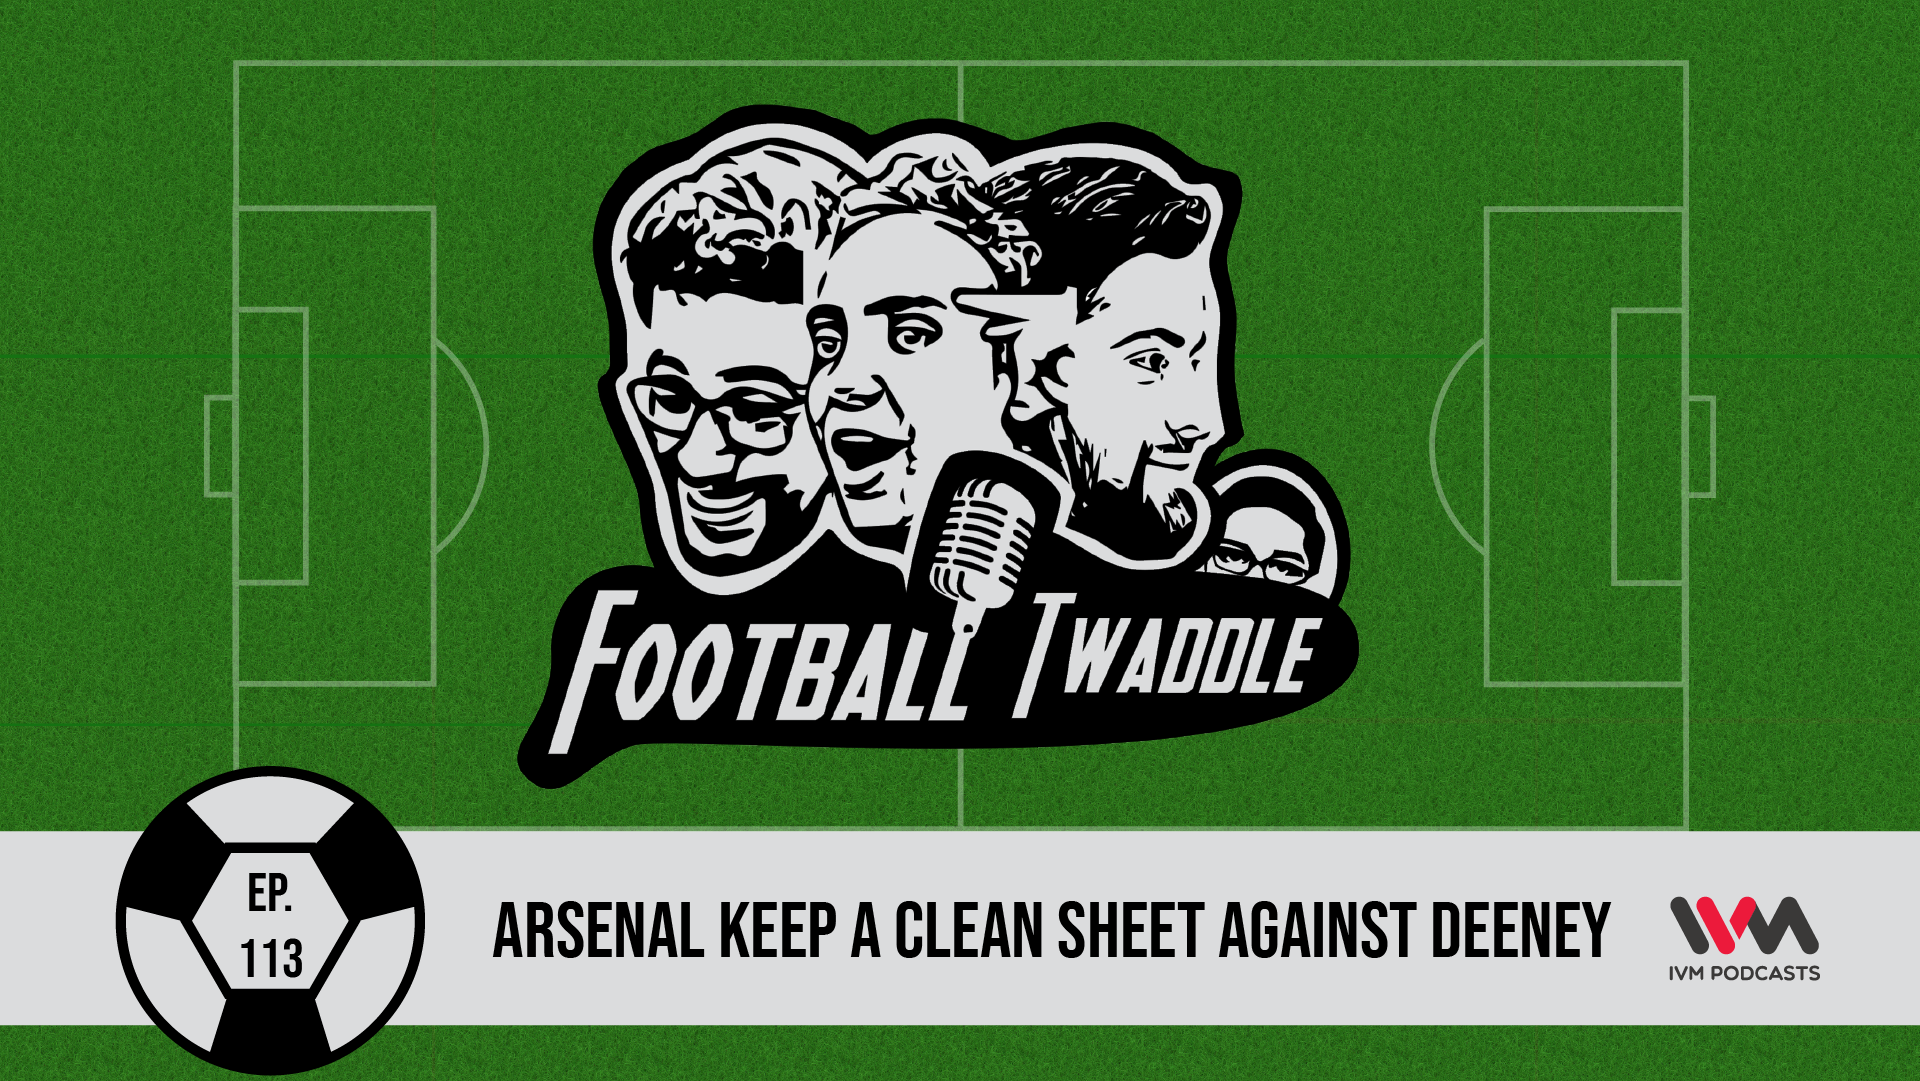 FootballTwaddleEpisode113.png